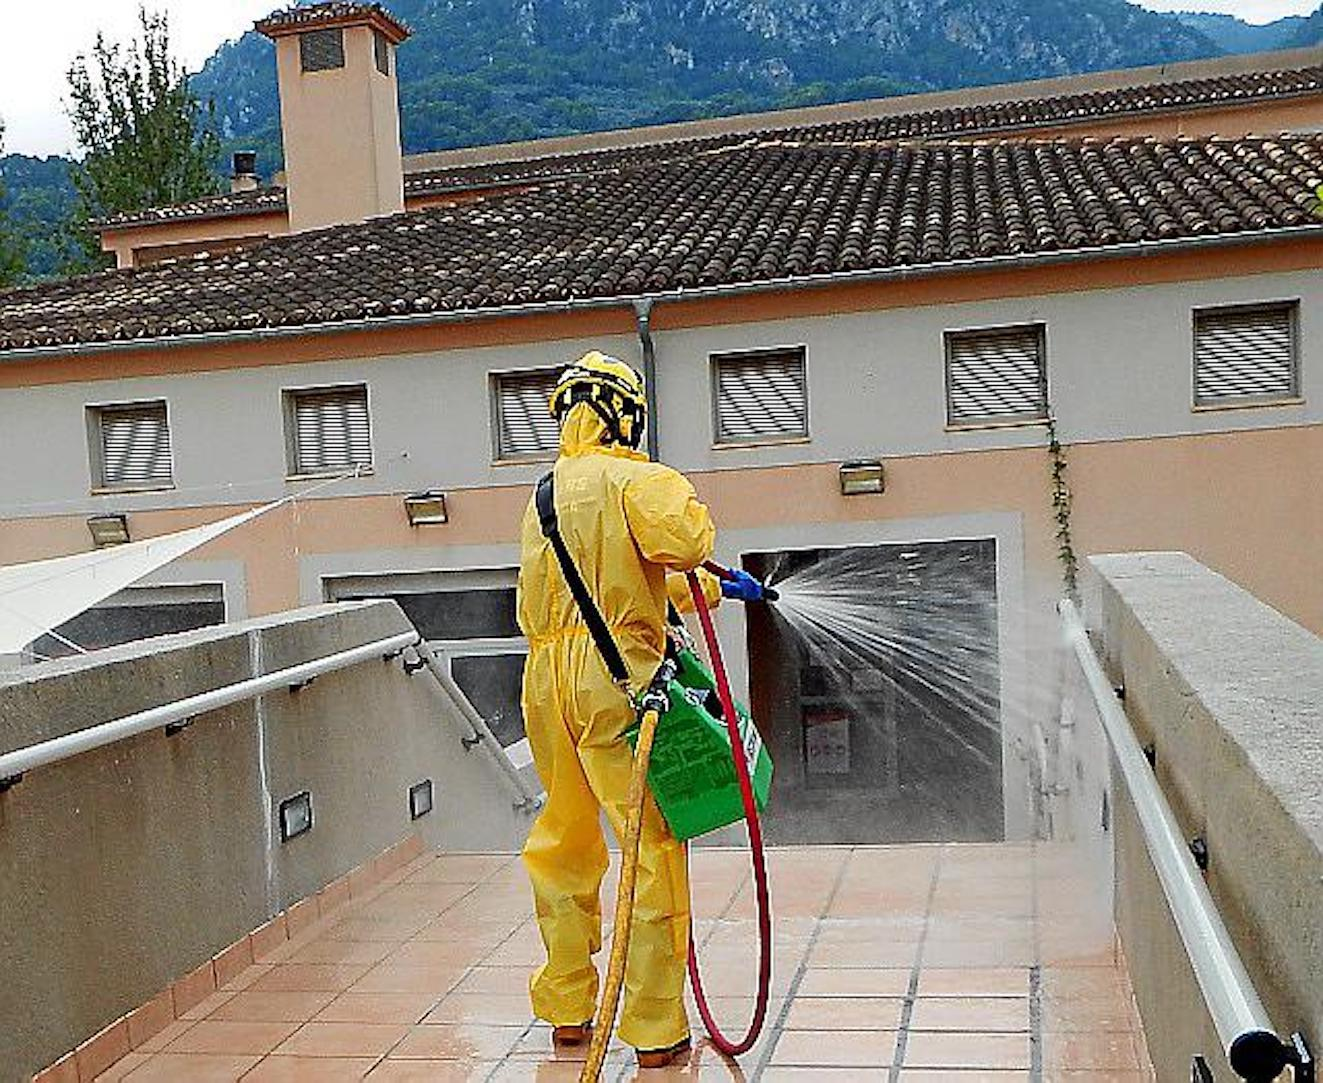 Bell Entorn Nursing Home being disinfected.